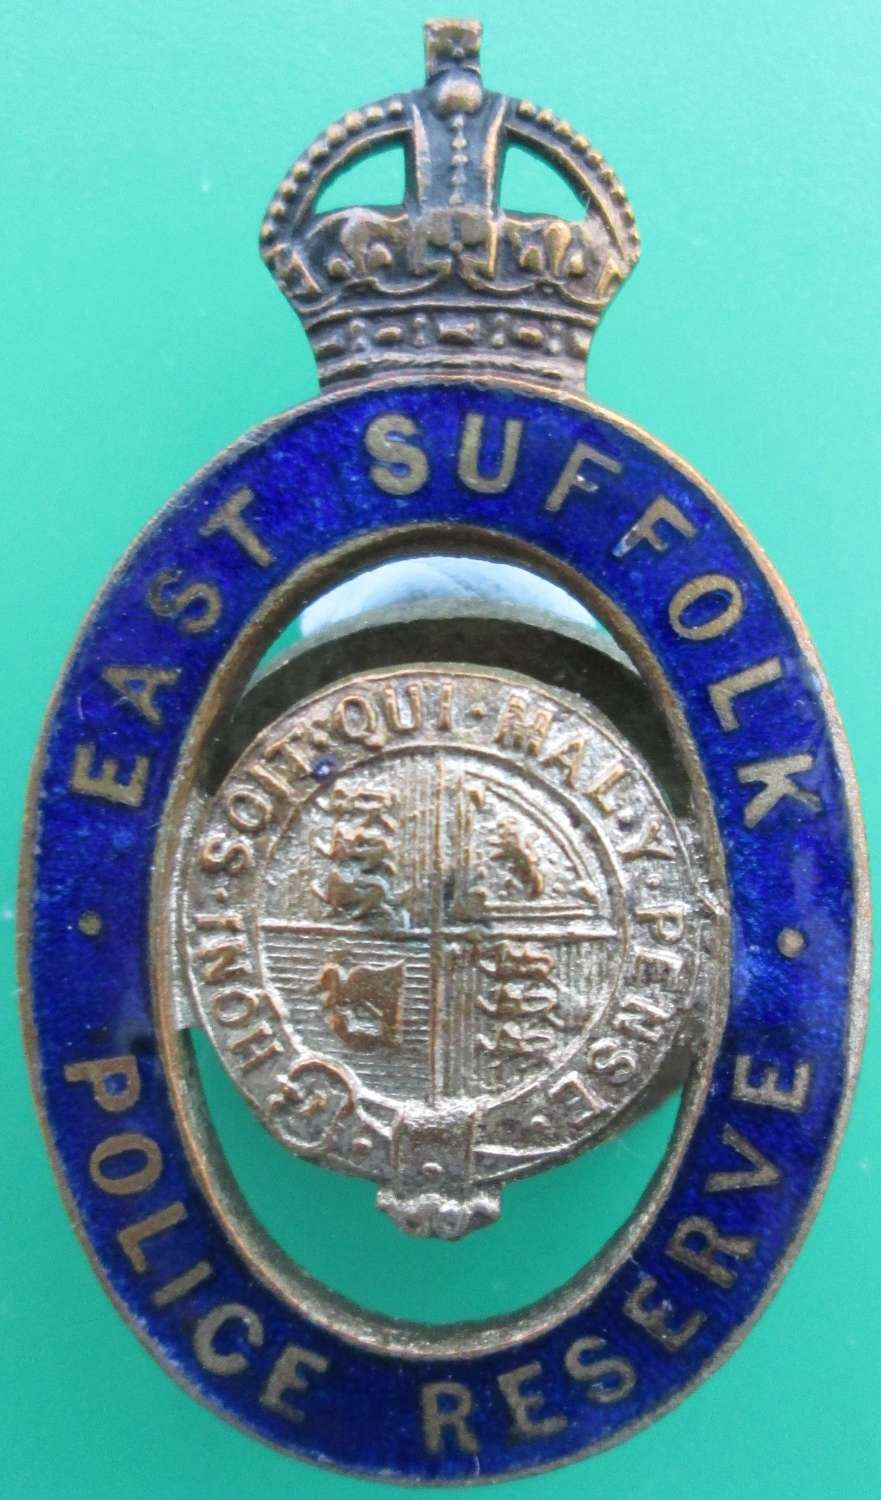 AN EAST SUFFOLK POLICE RESERVE BADGE